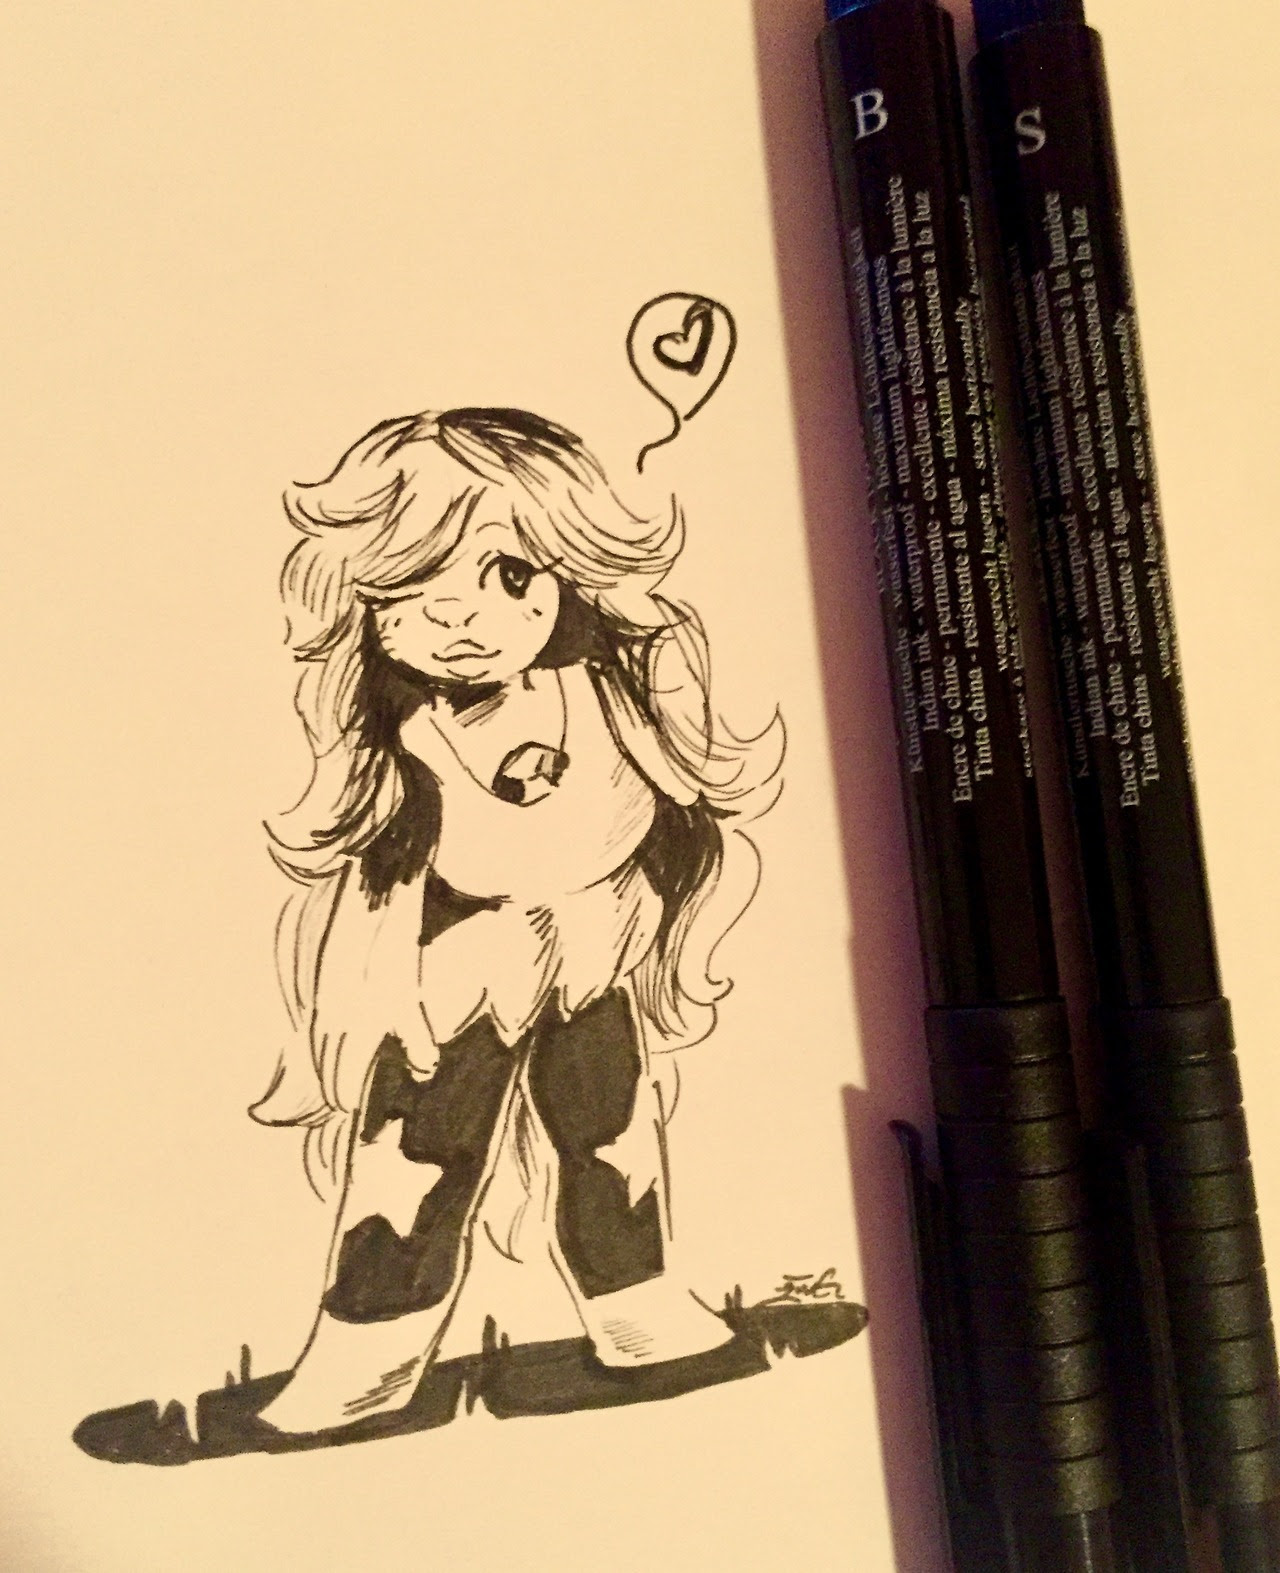 Have an amethyst in black pen because I'm tired and she's fun to draw